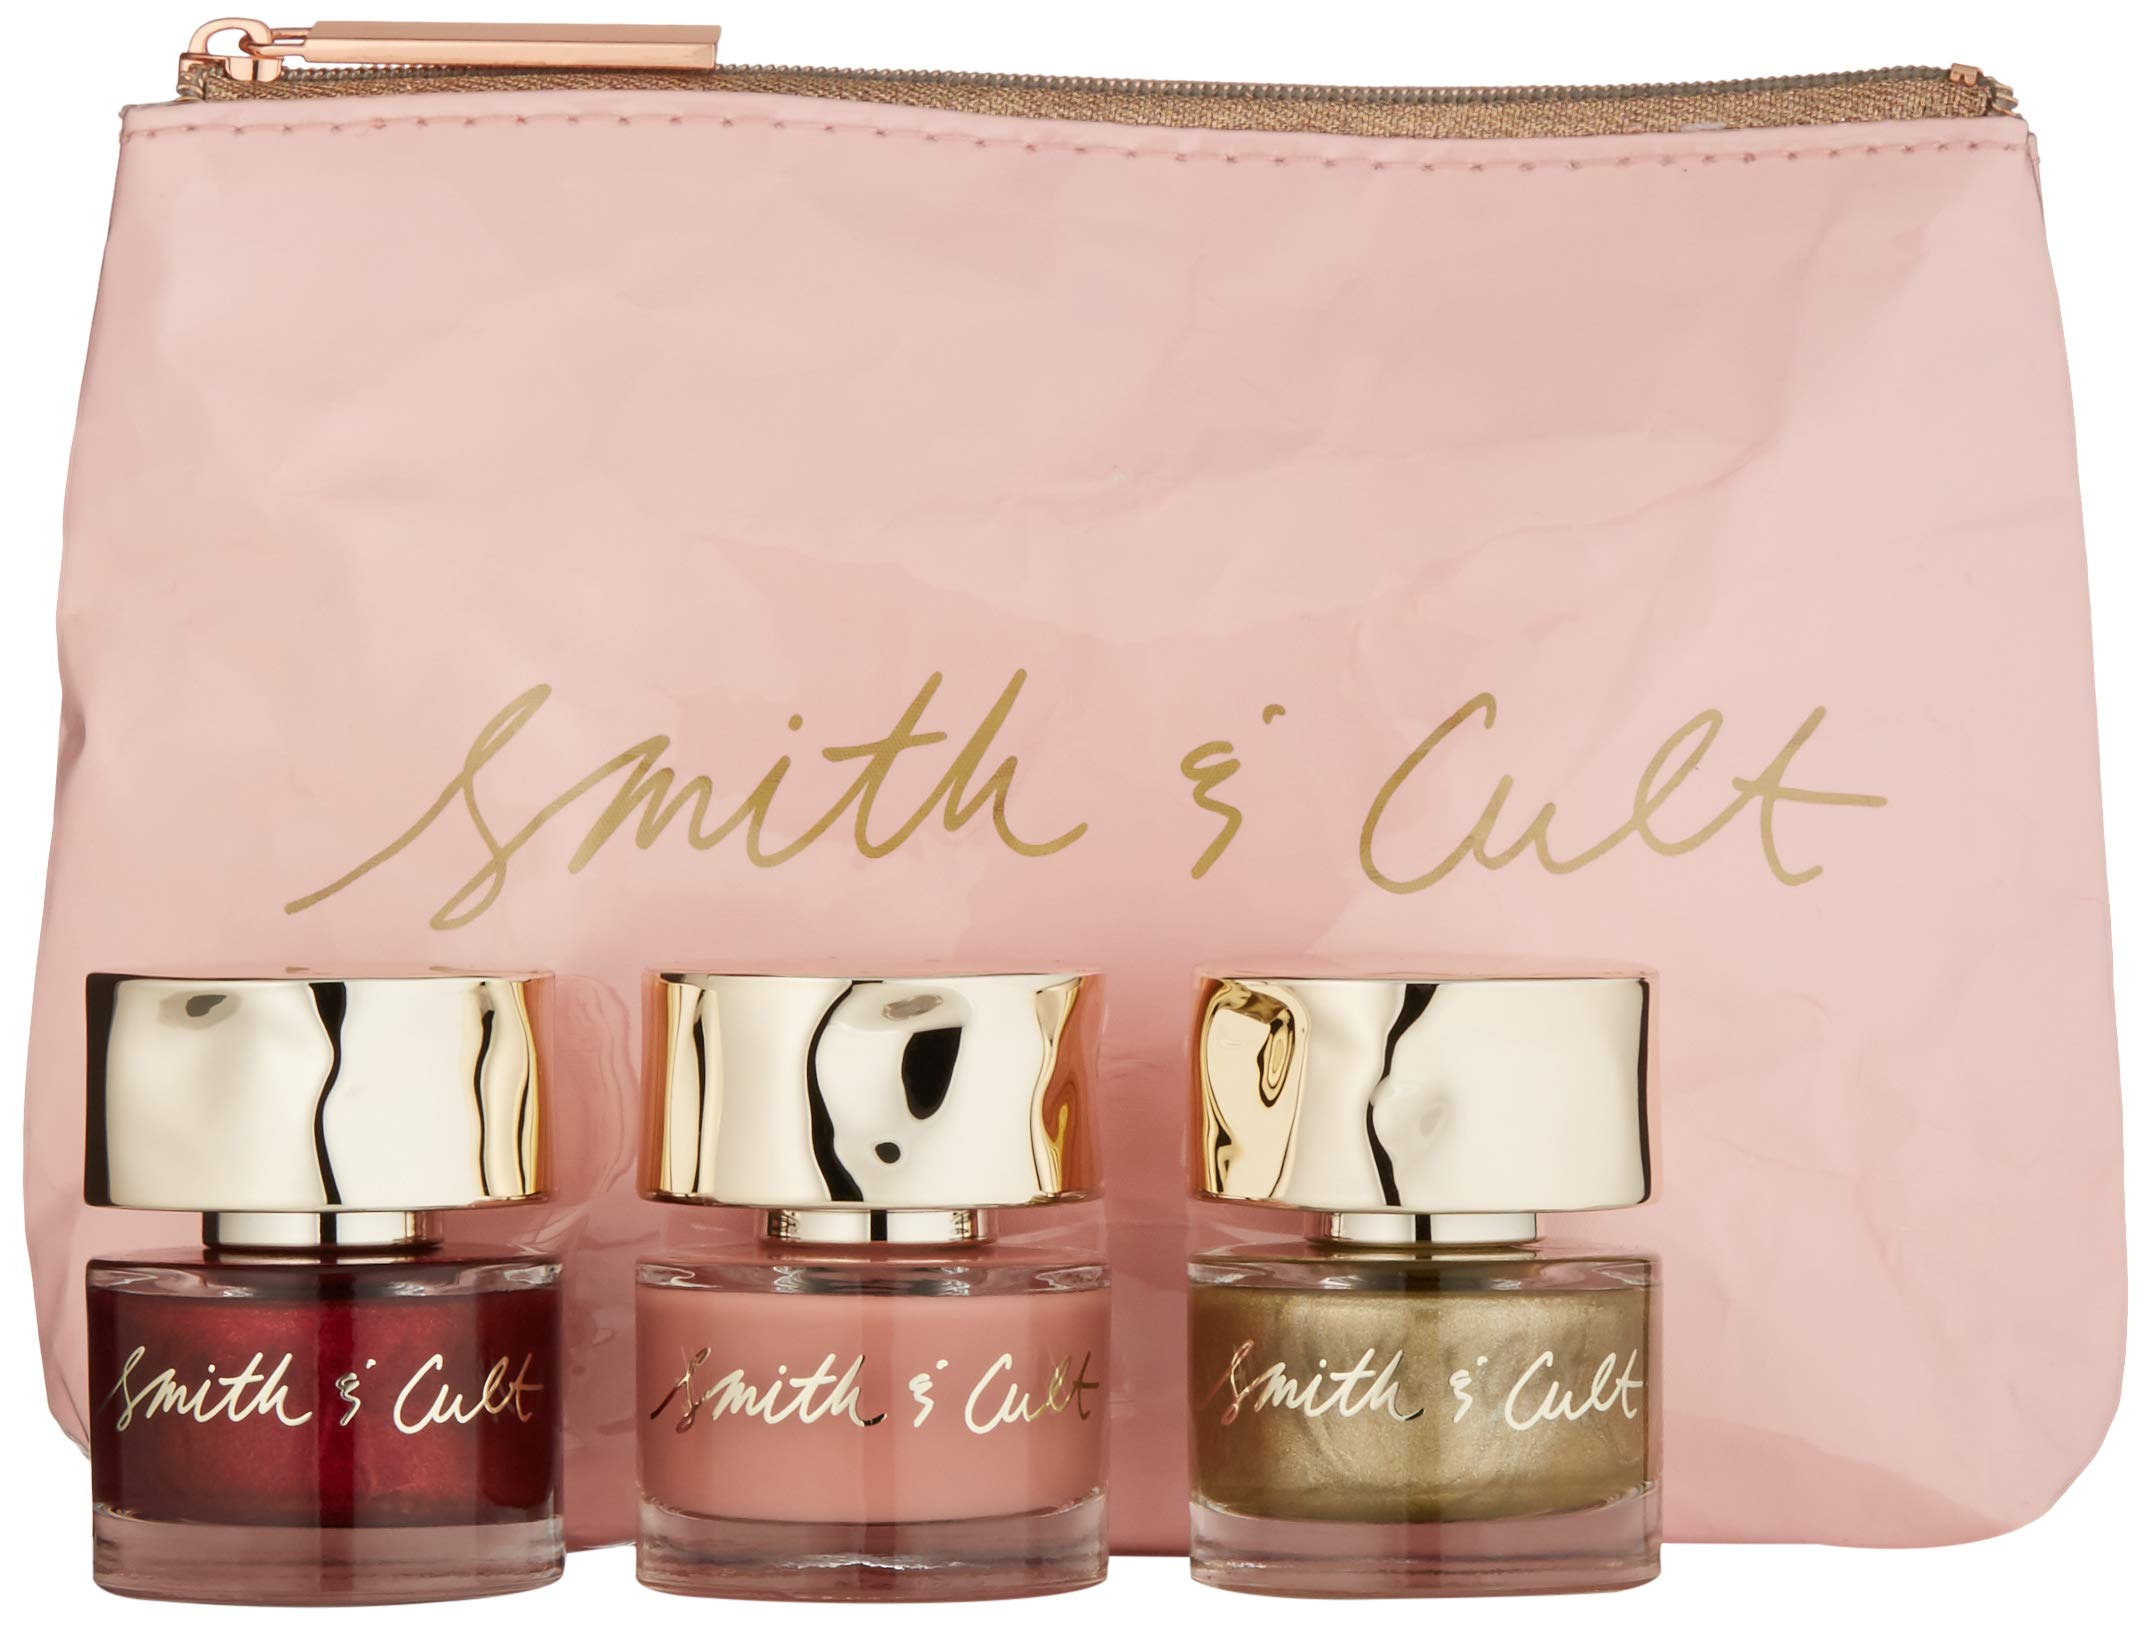 Smith & Cult Holiday Gift Set, Nailed Lacquer, 1.3 Ounce